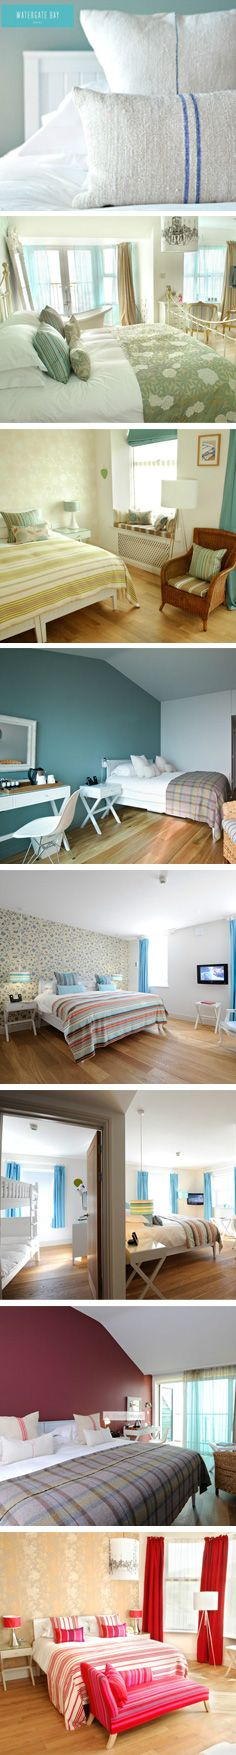 Rooms at Watergate Bay Hotel, Newquay. #FillYourStocking